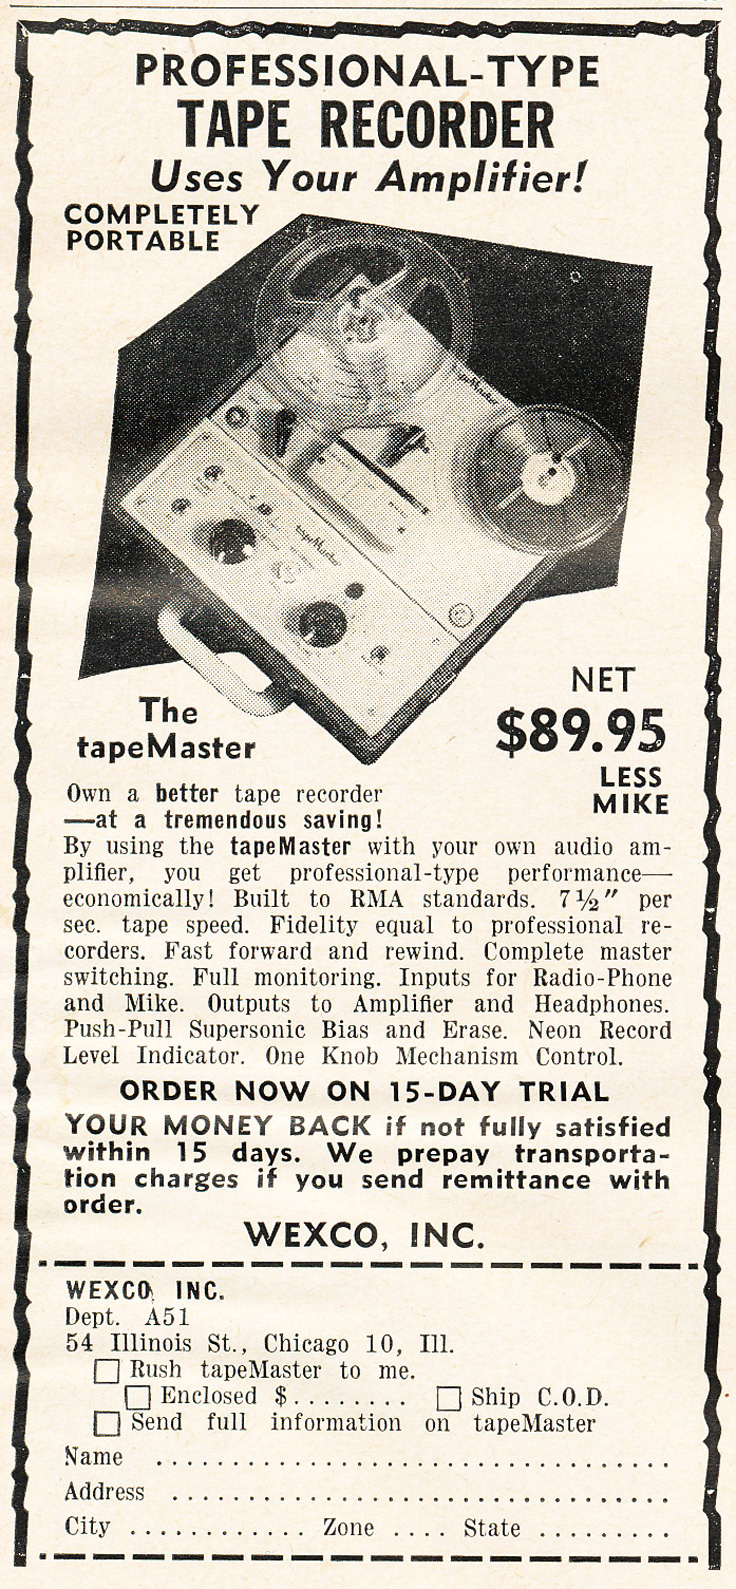 1951 ad for the Wexco reel to reel tape recorder in   Reel2ReelTexas.com's vintage recording collection